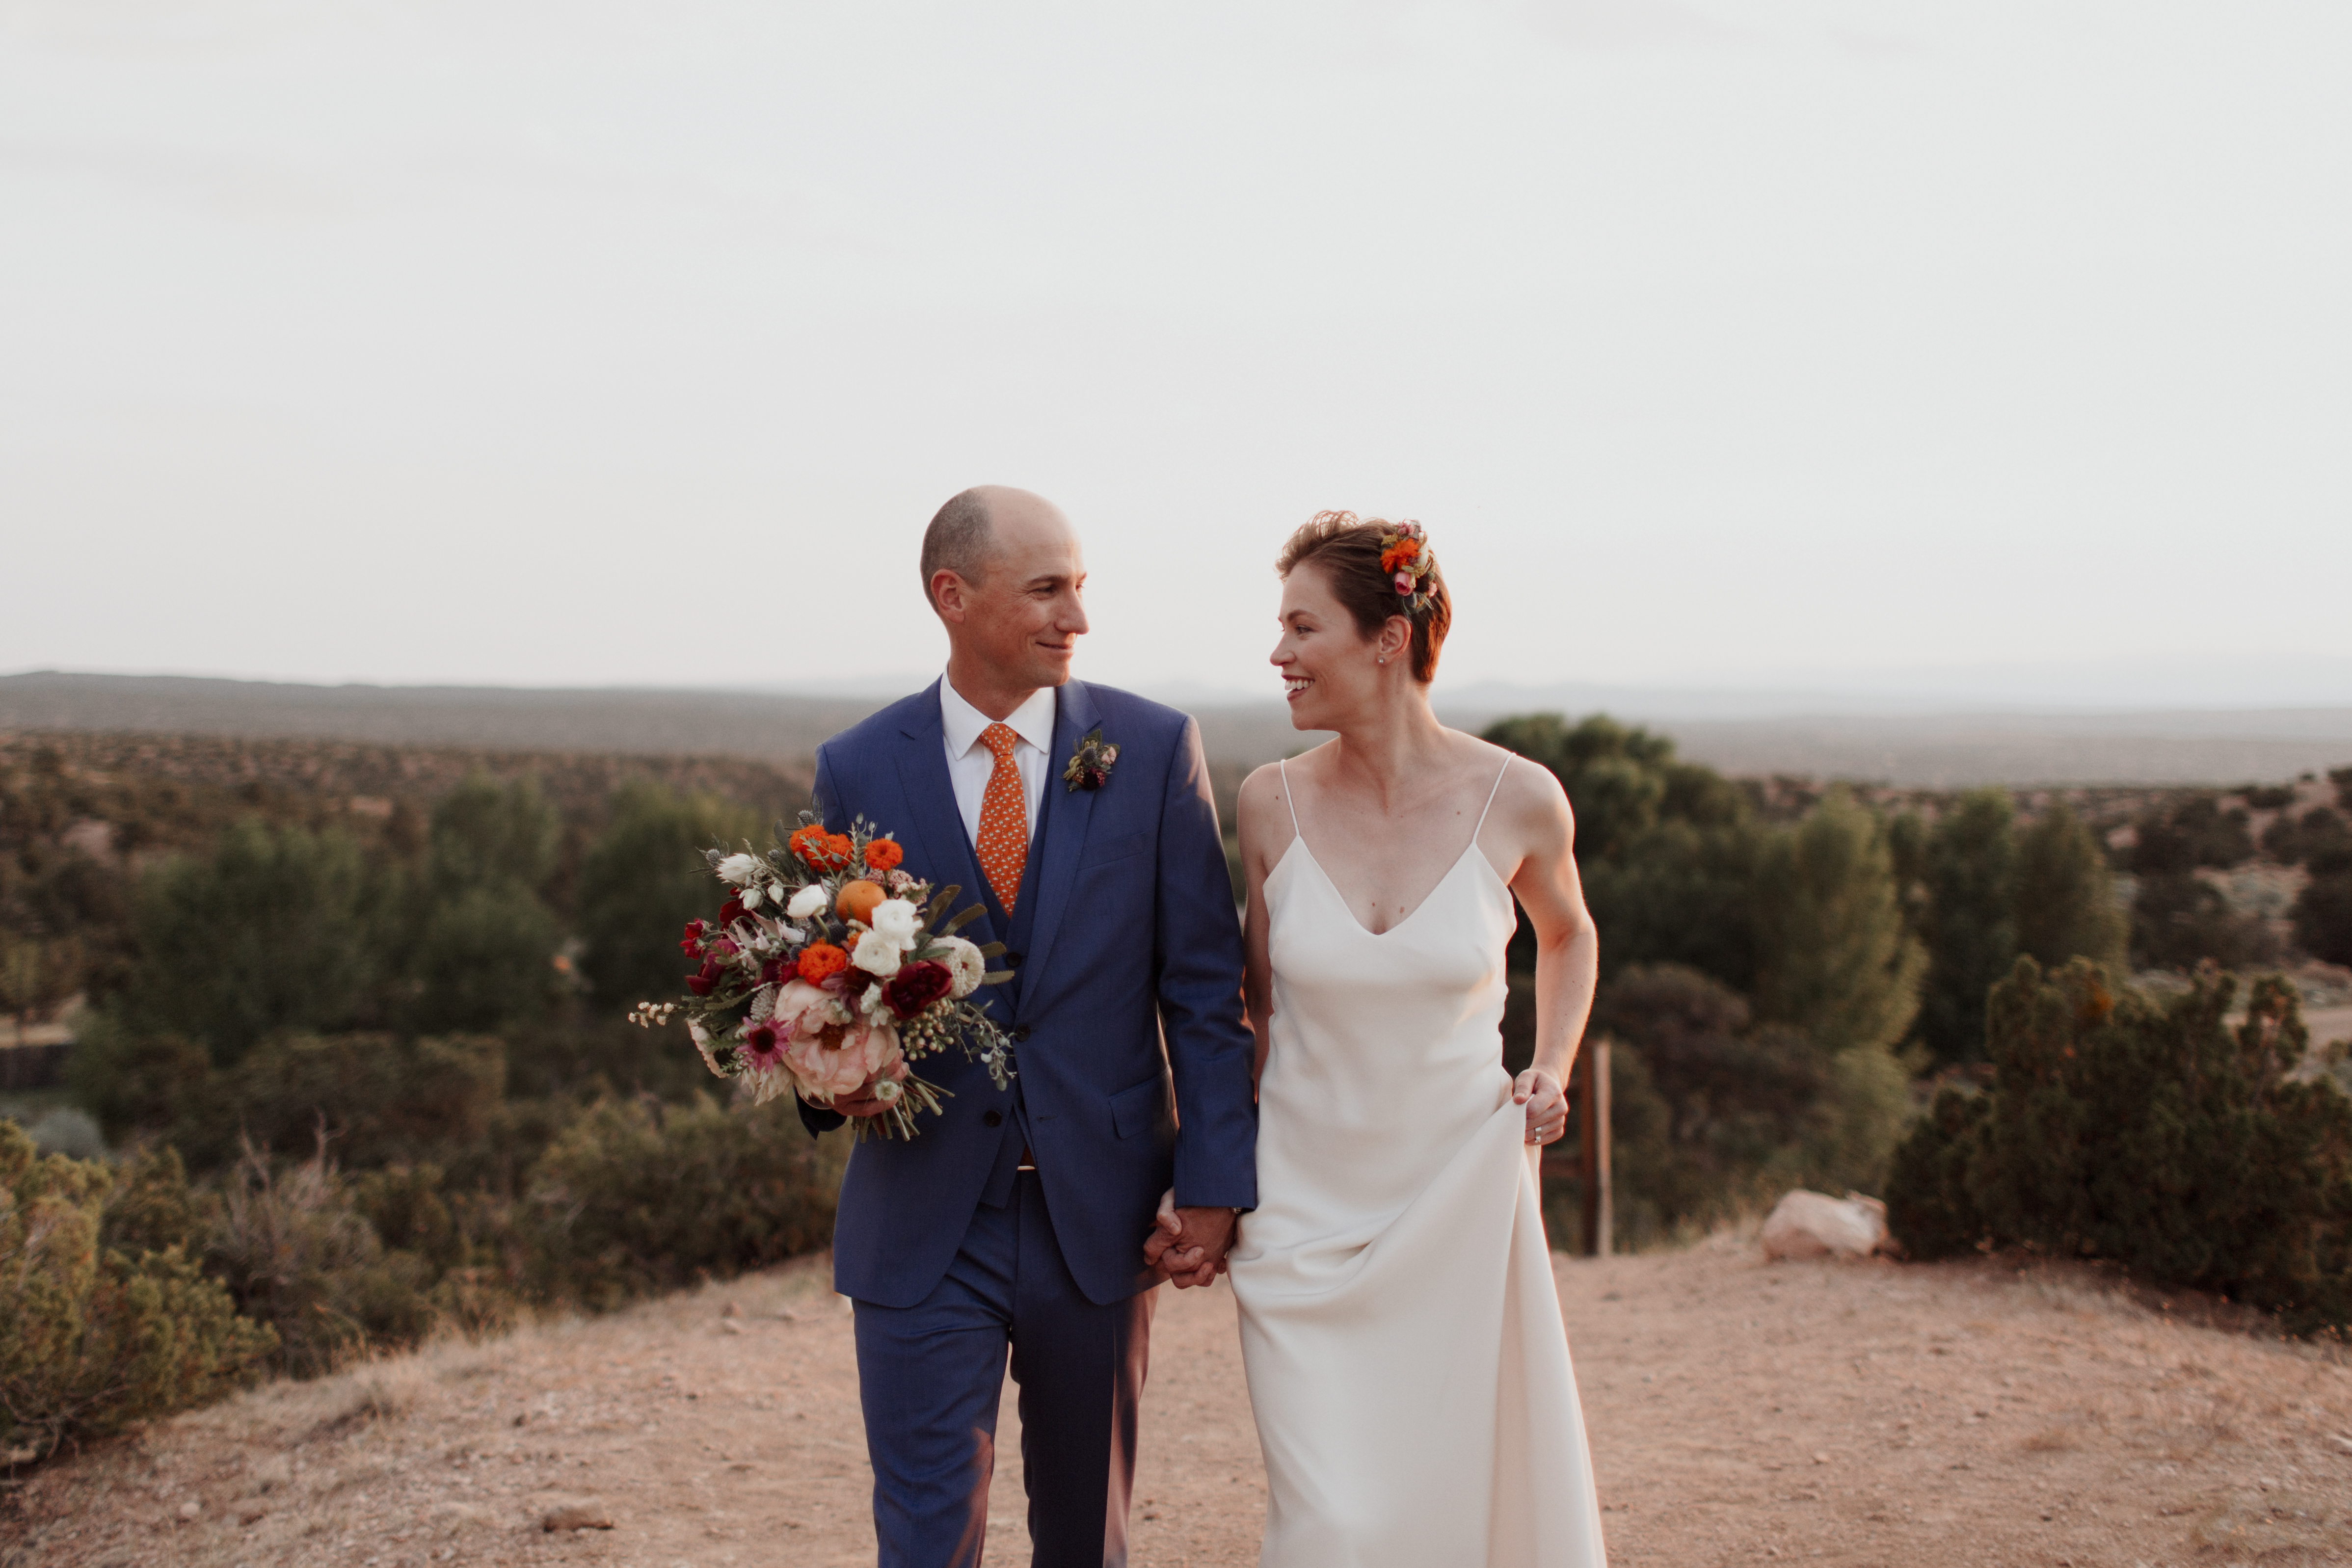 landscape romantic simple updo flowers jewel tones wedding outdoor ceremony planning New Mexico design inspiration orange blue suit silk gown bouquet vows officiants real hair bridal photography romantic couple natural light